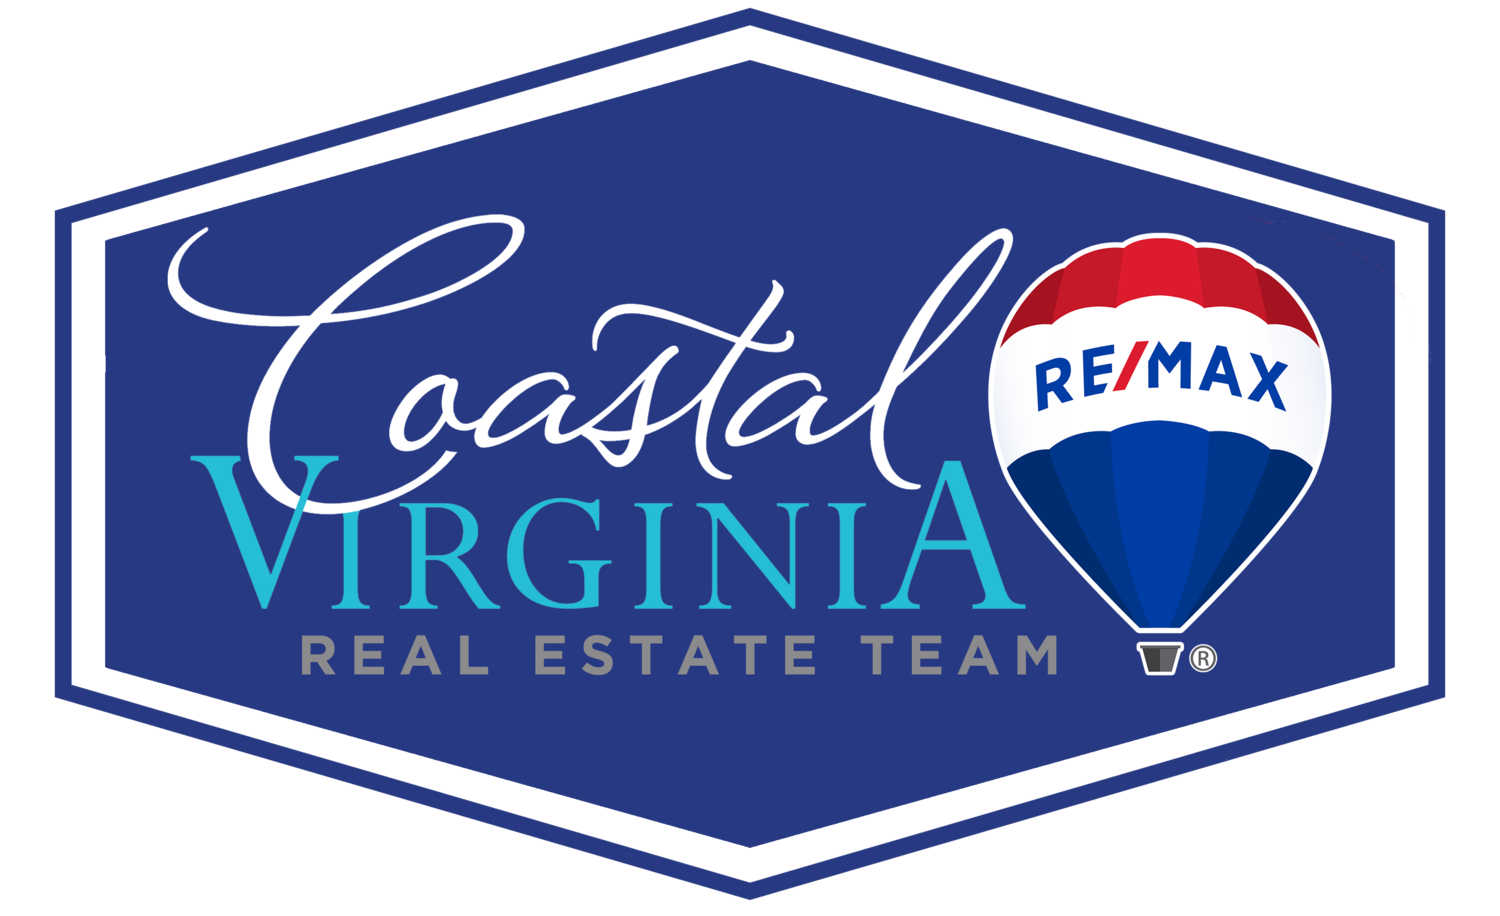 The Coastal VA Real Estate Team